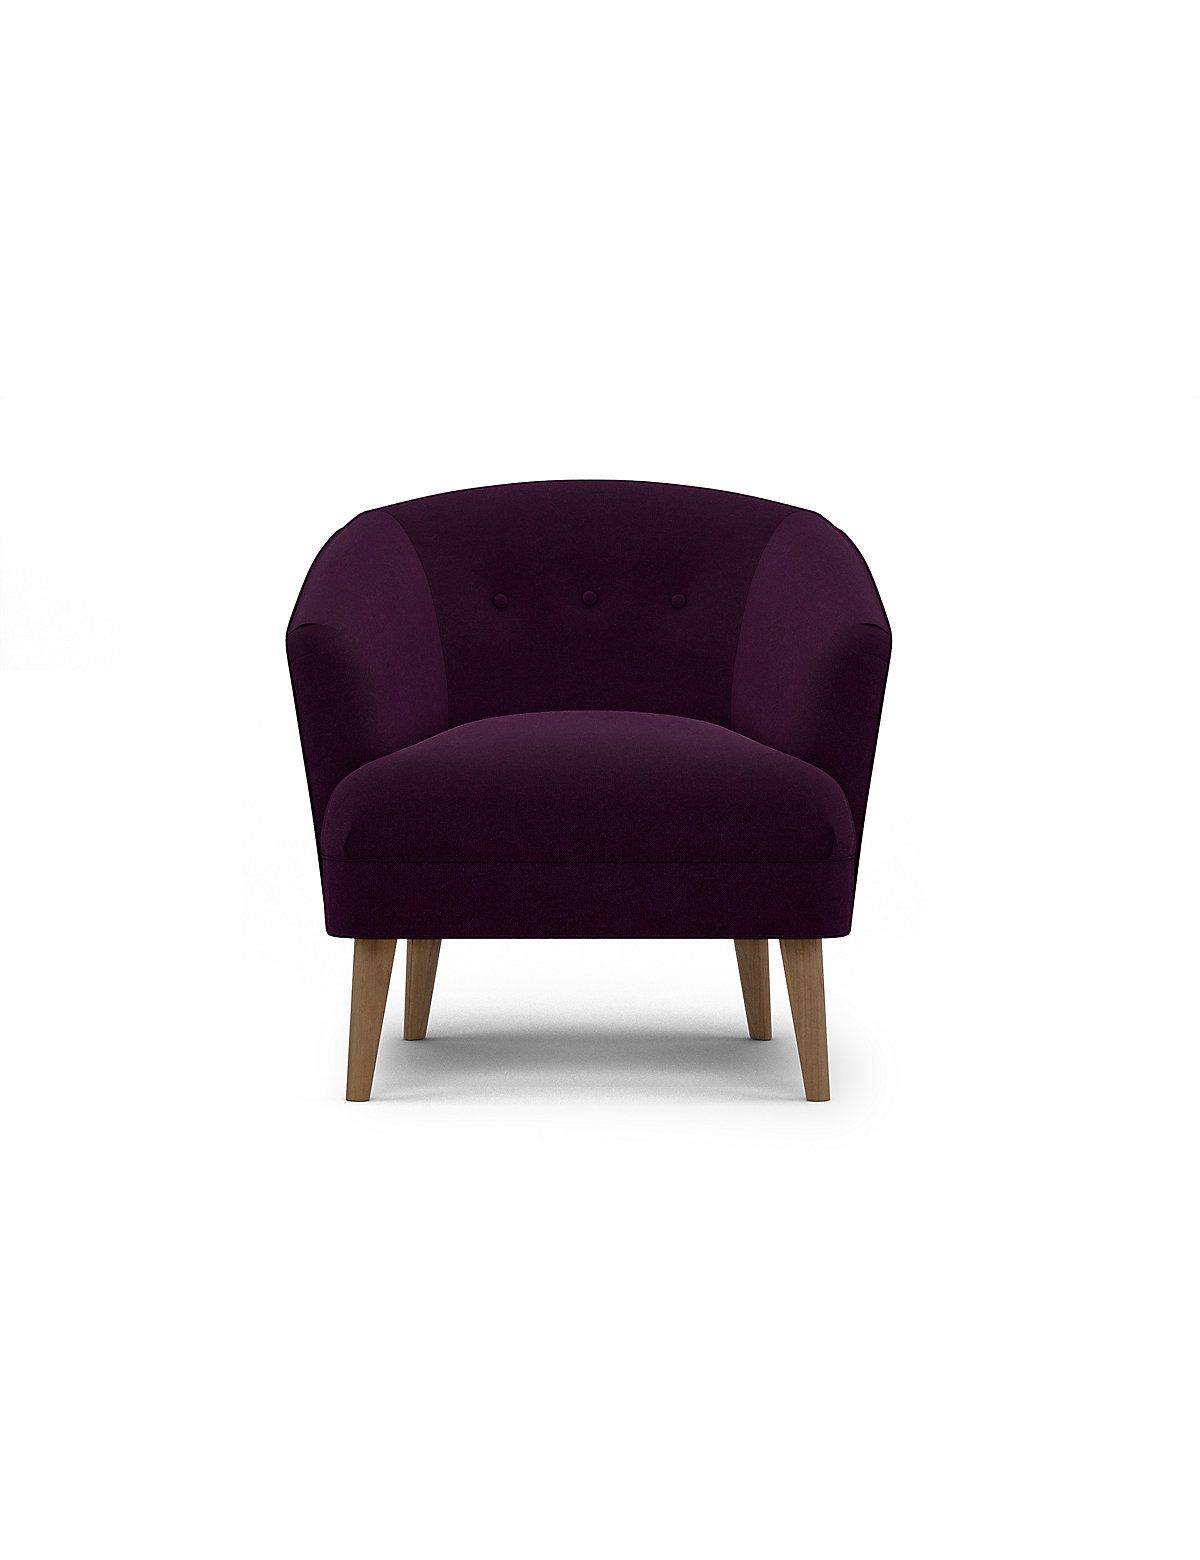 Small Occasional Chairs Marks And Spencer